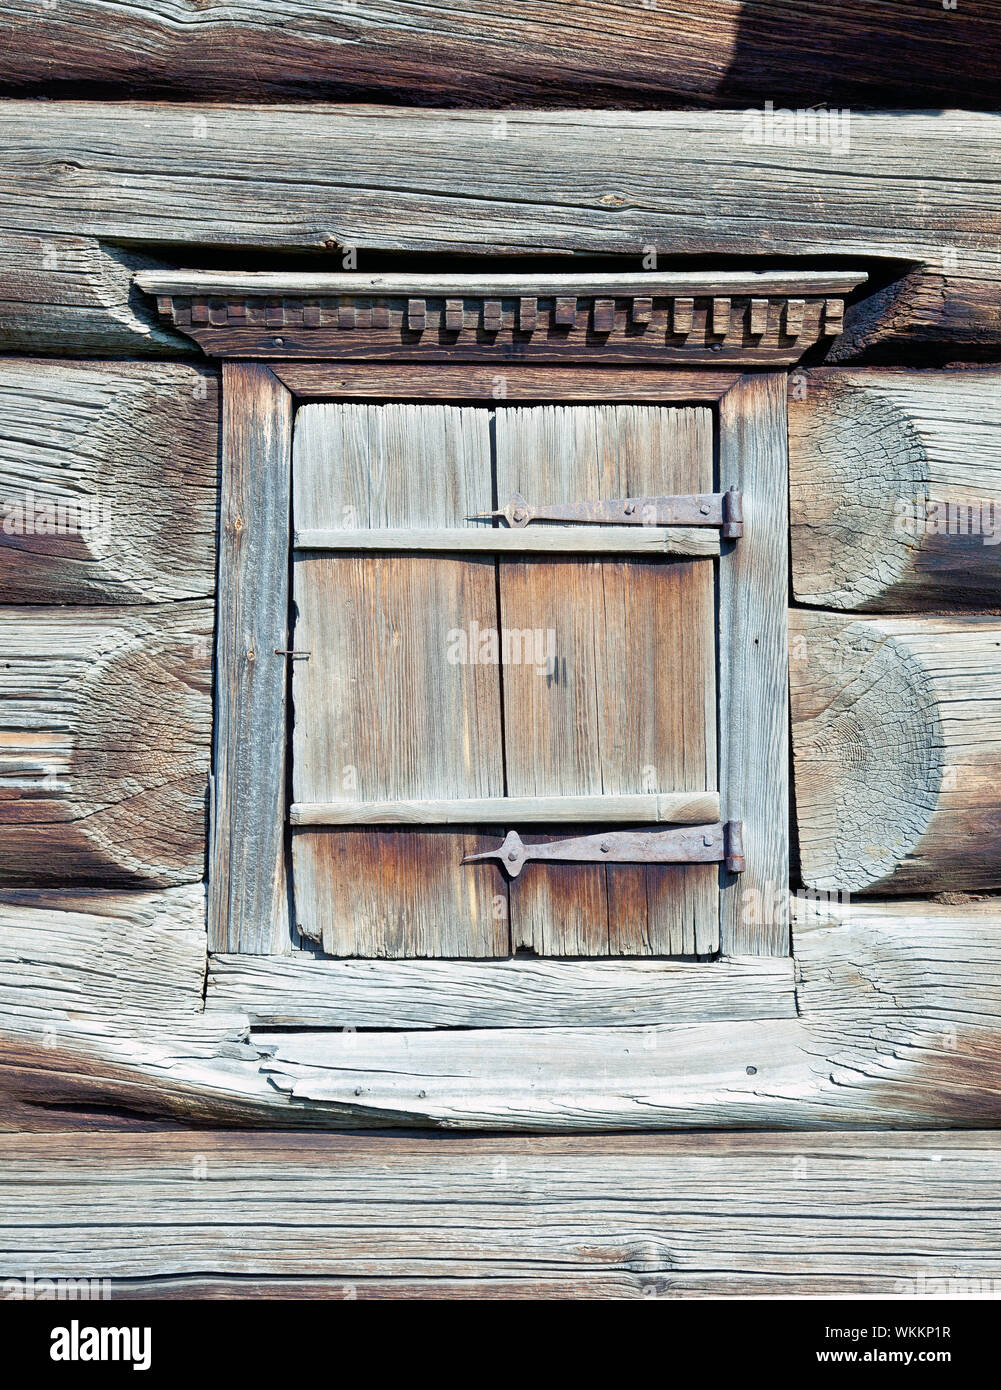 A Small Closed Window In The Wall Of An Old Wooden House